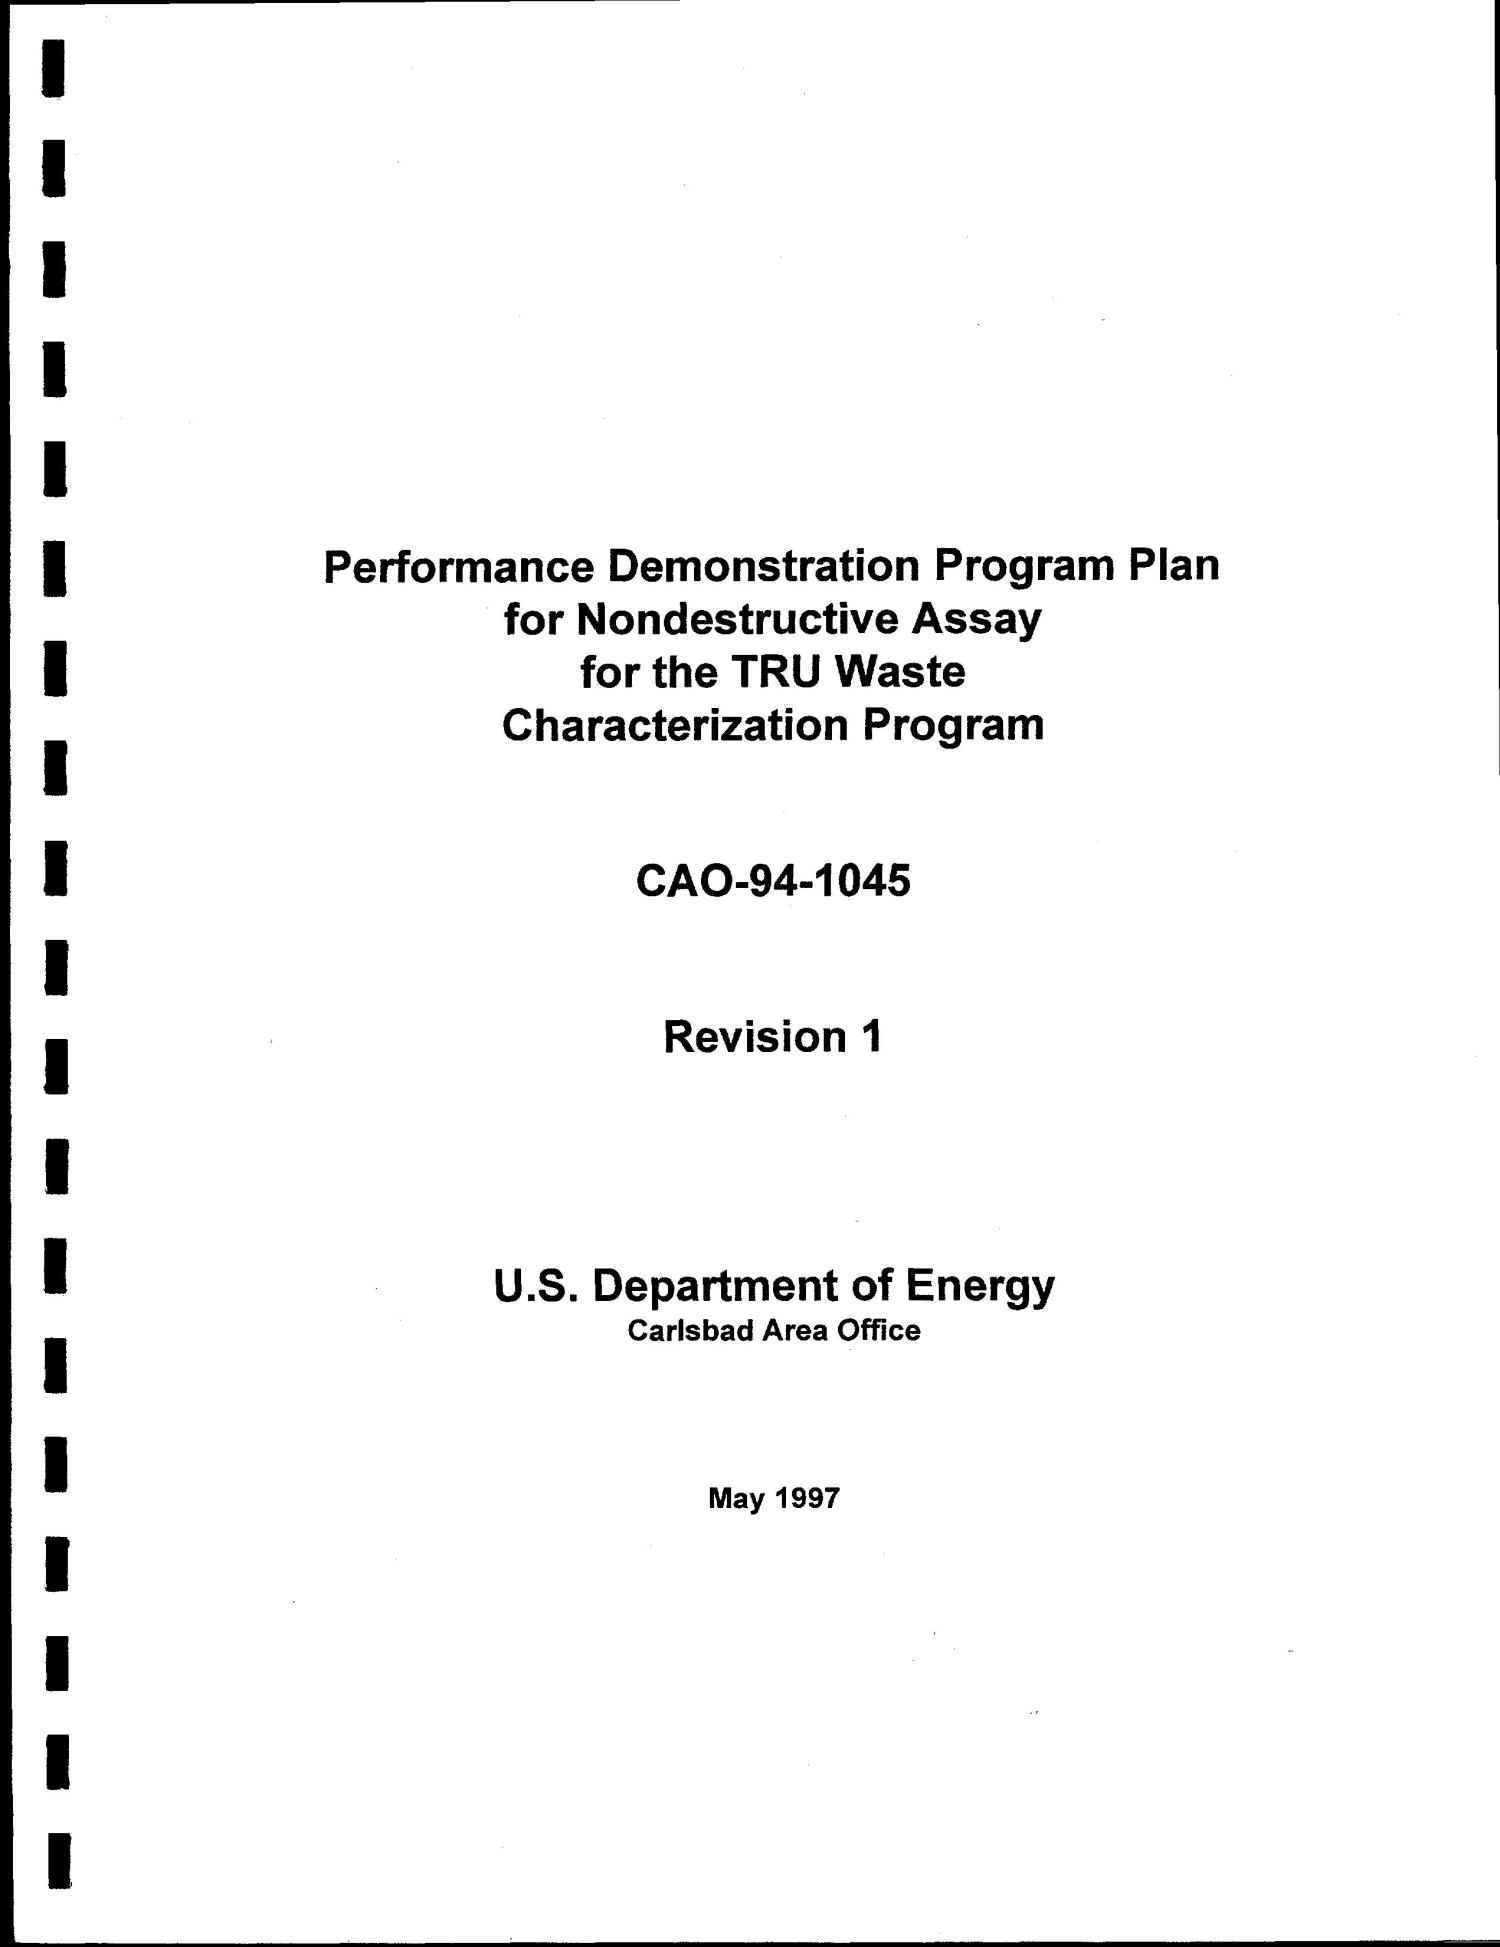 Performance Demonstration Program Plan for Nondestructive Assay for the TRU Waste Characterization Program. Revision 1                                                                                                      [Sequence #]: 1 of 59